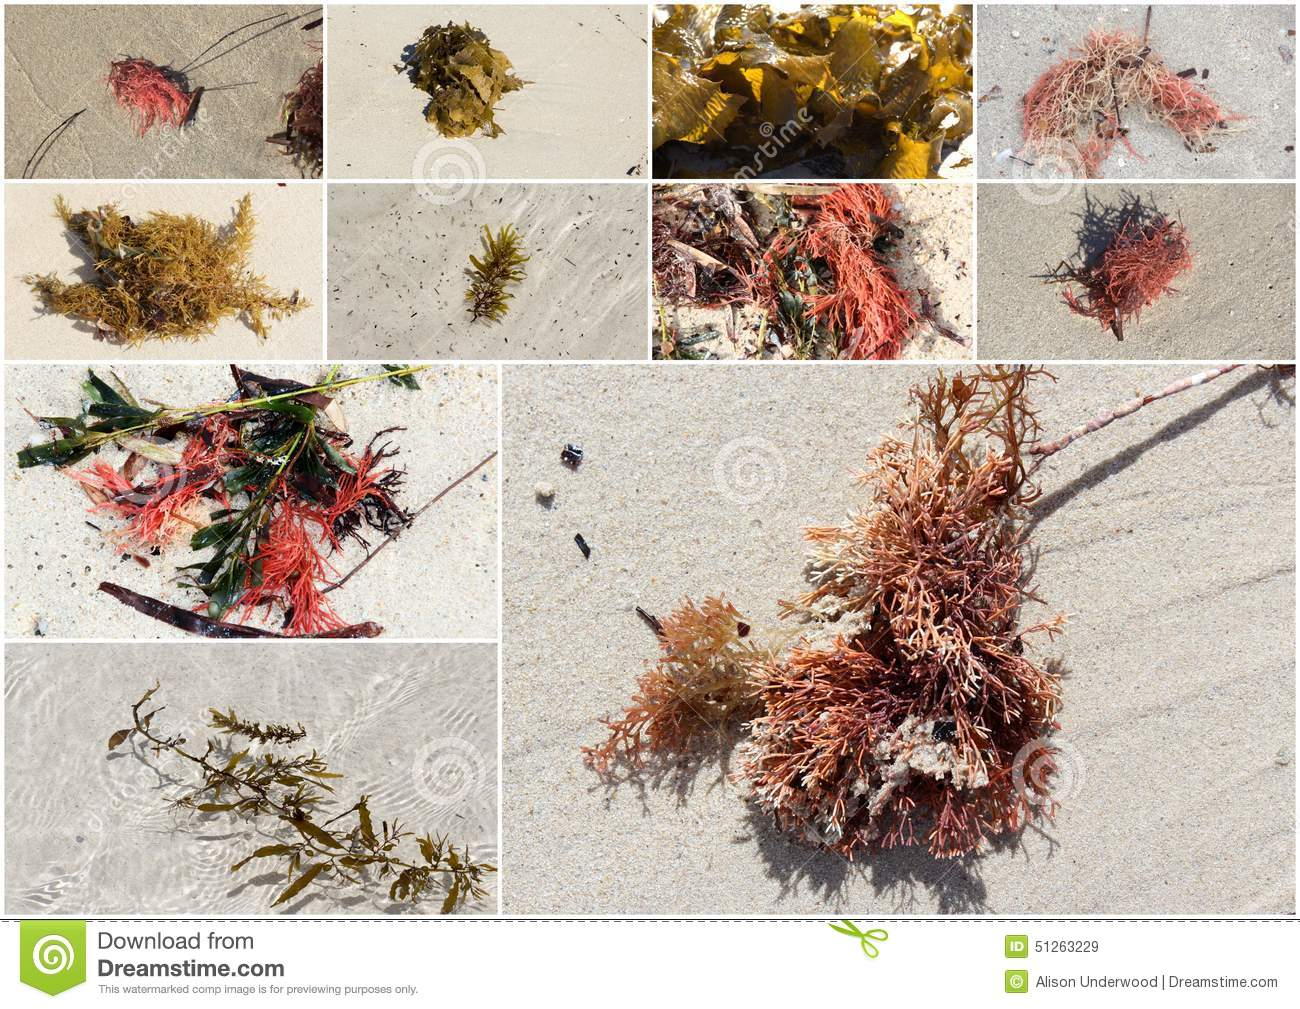 Collage Of Colorful Seaweed Kelp Washed Up On Hutt's Beach